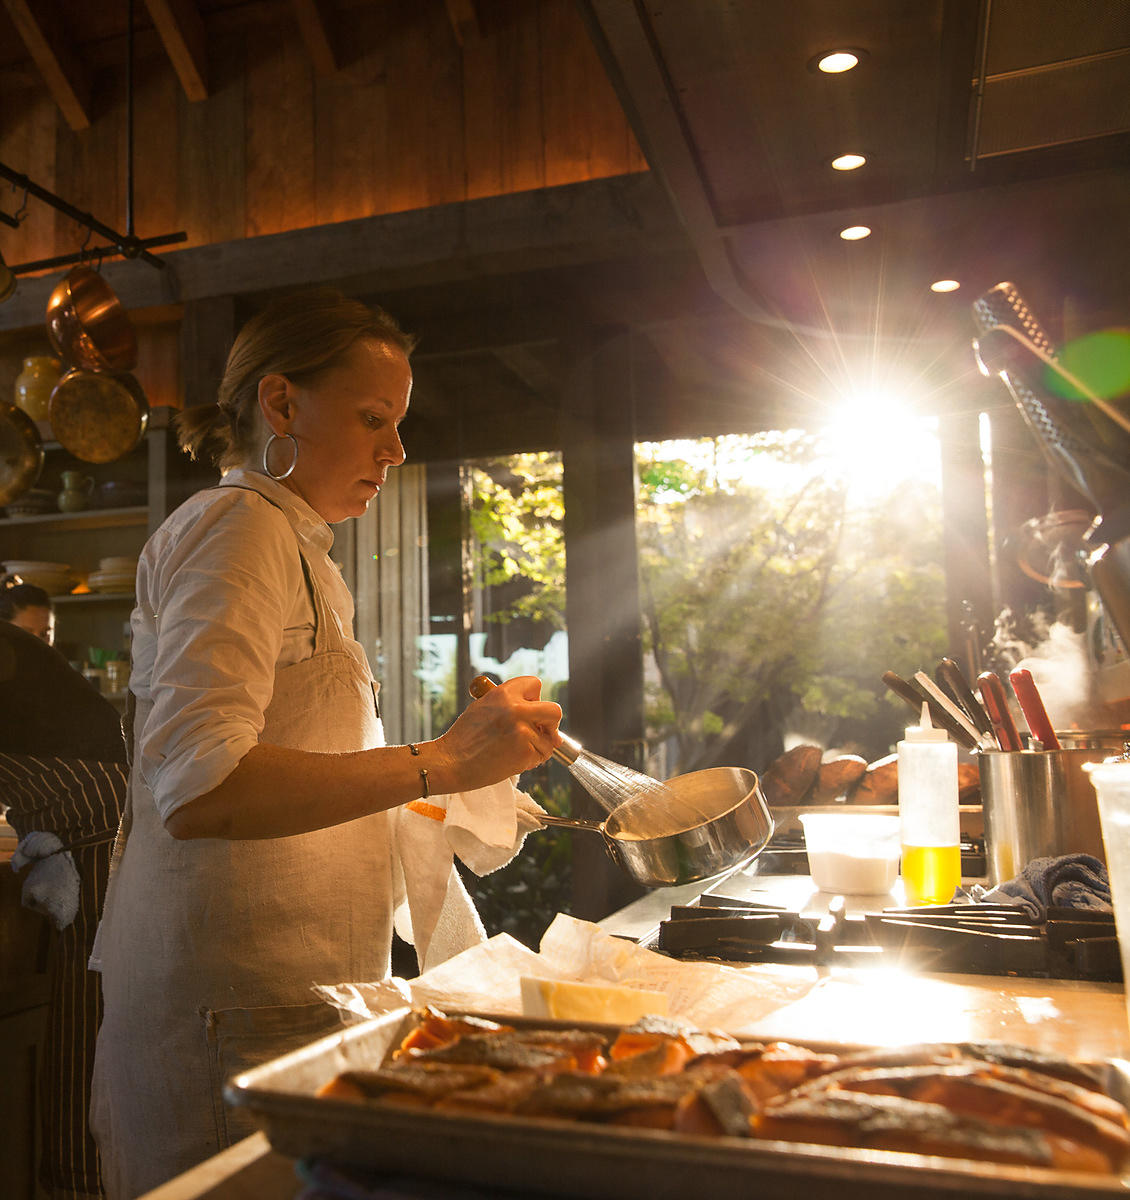 Cooking editorial photoshoot in Napa Valley by Jason Tinacci